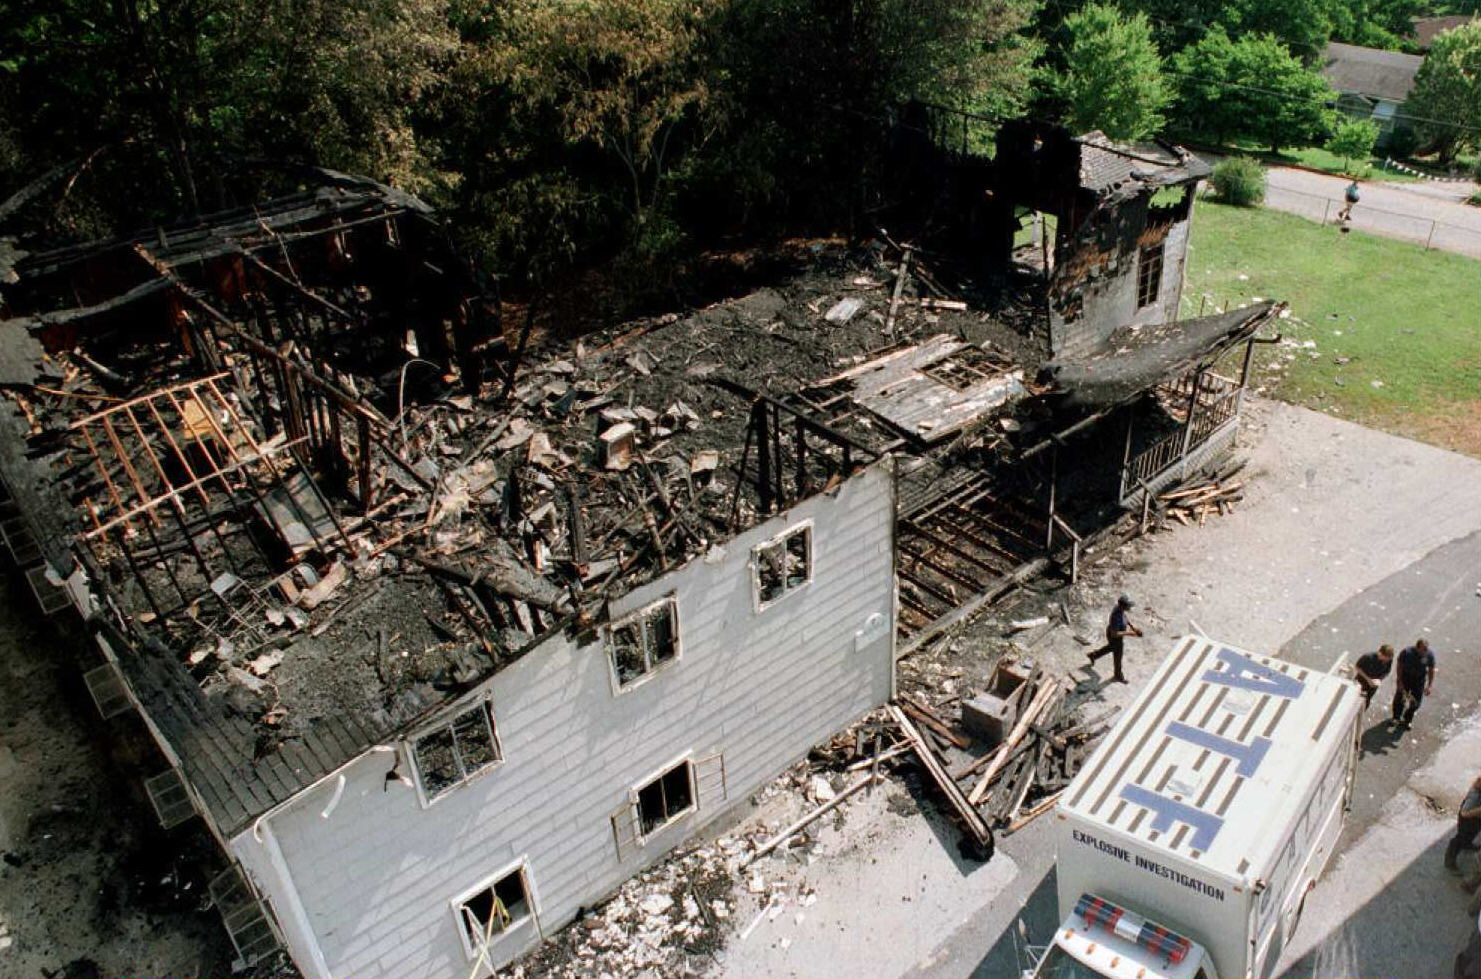 Bureau of Alcohol, Tobacco and Firearms (ATF) investigators inspect the scene of a fire at predominantly African-American Pine Lake Baptist Church in Pine Lake, Georgia, June 17, 1995. (Getty)